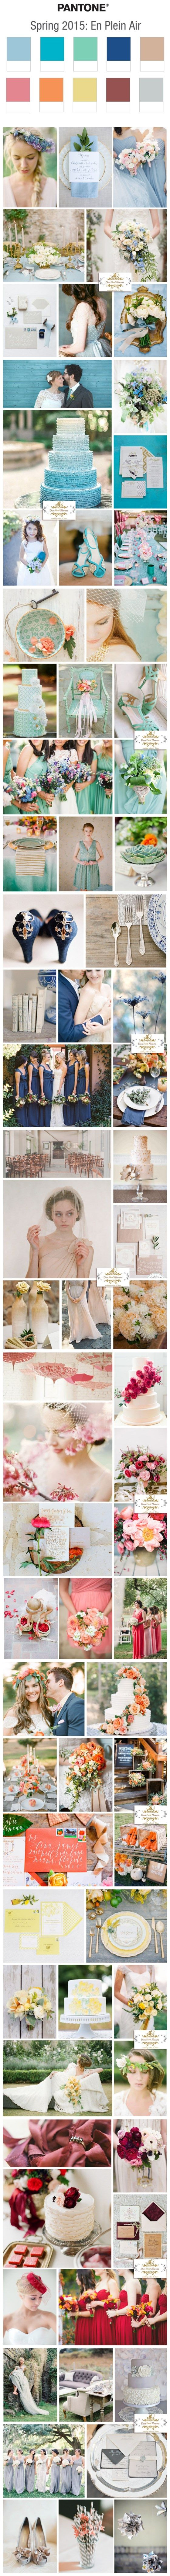 Top 10 Wedding Color Ideas for Spring 2015